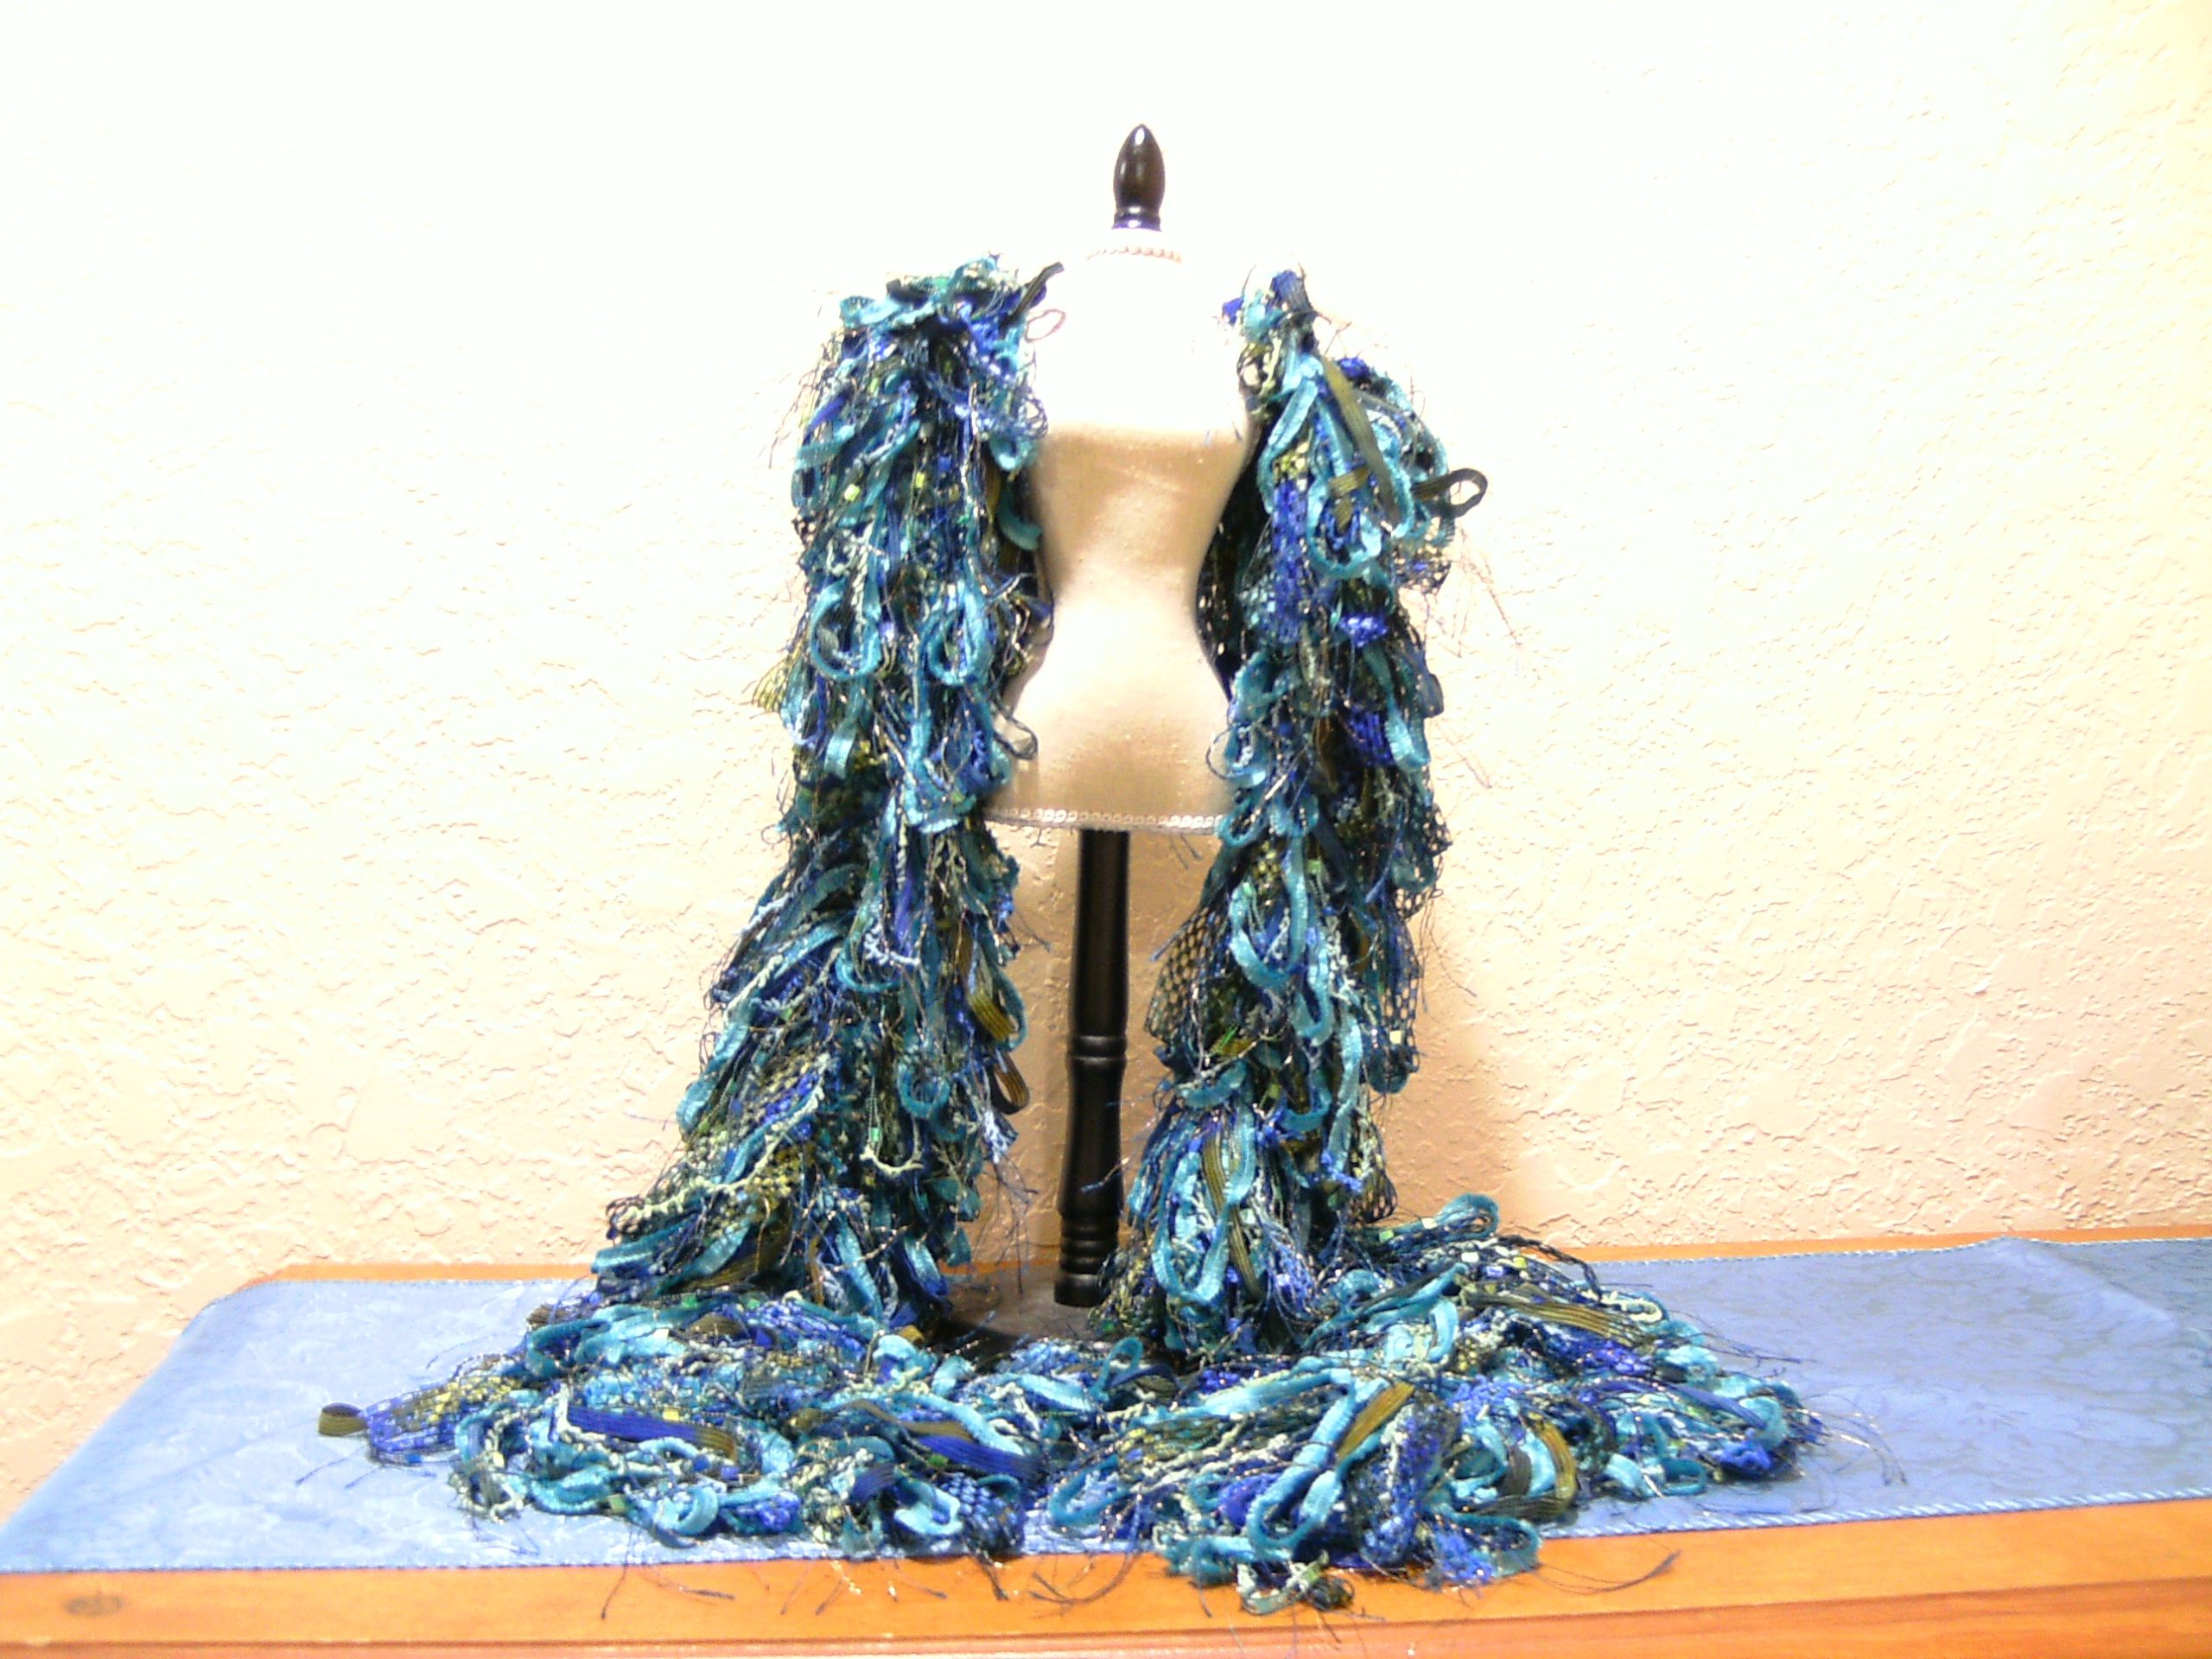 Blue and Green hair pin lace scarf.